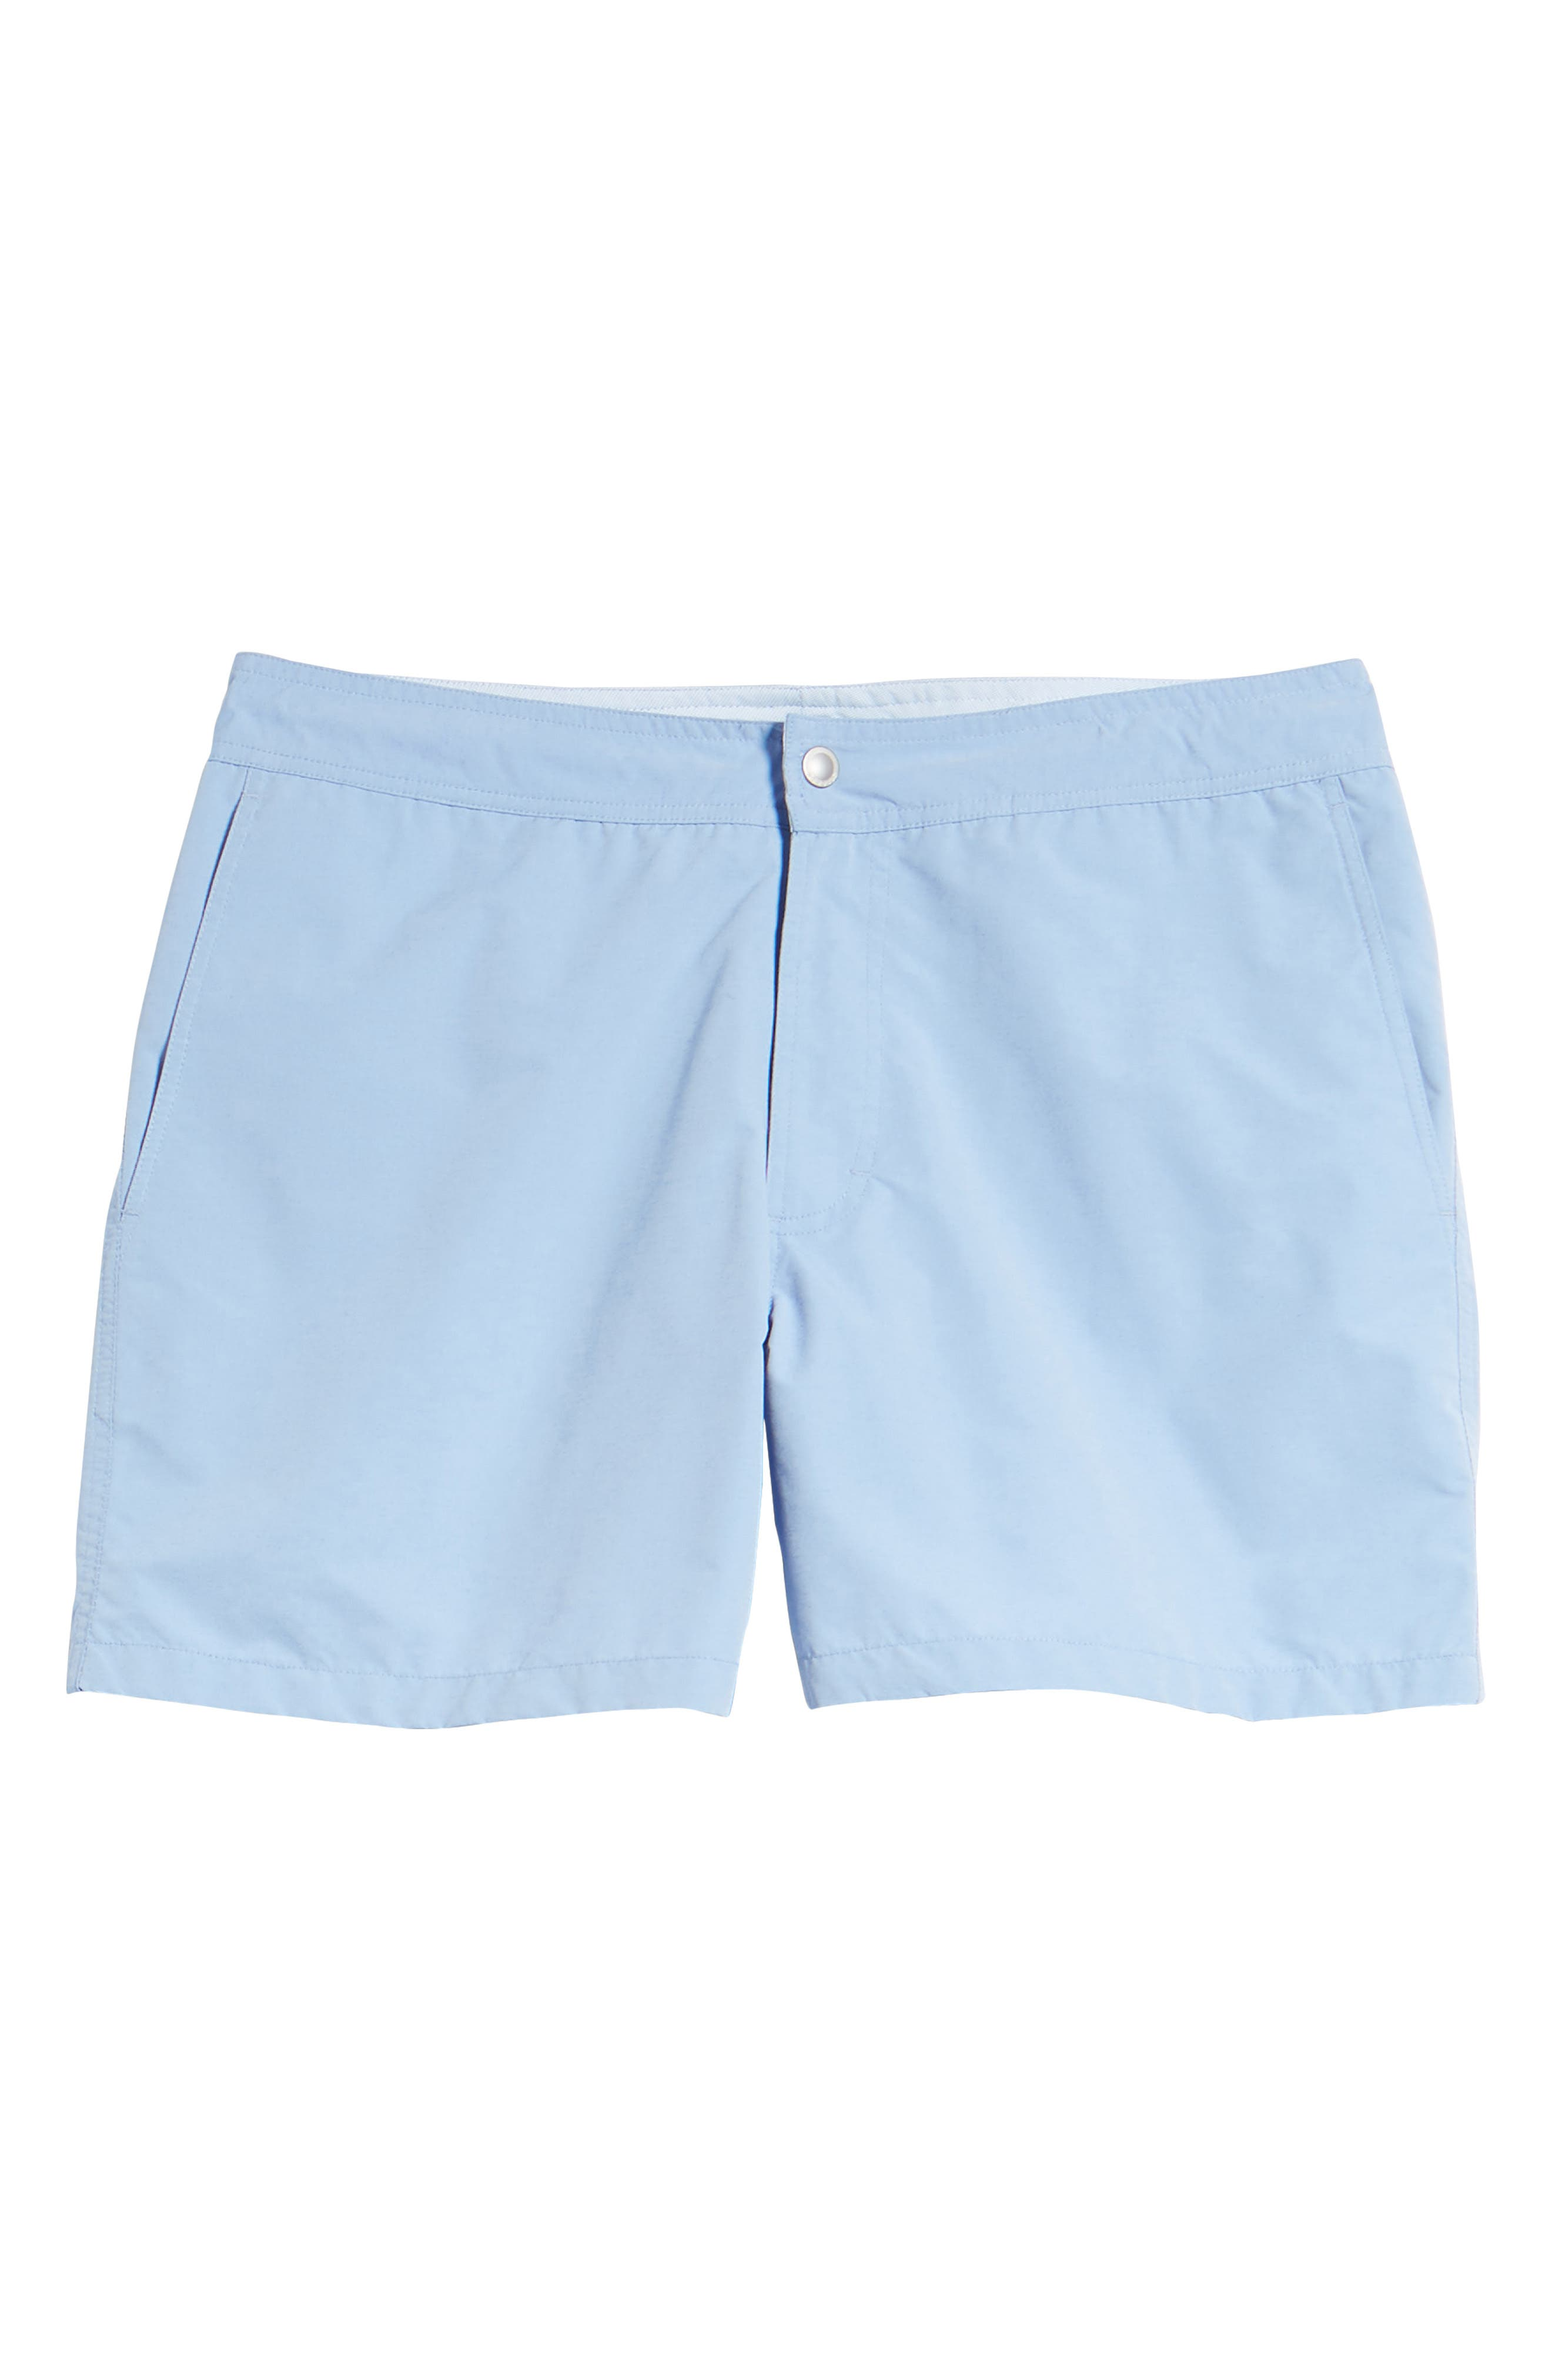 Solid 5-Inch Swim Trunks,                             Alternate thumbnail 6, color,